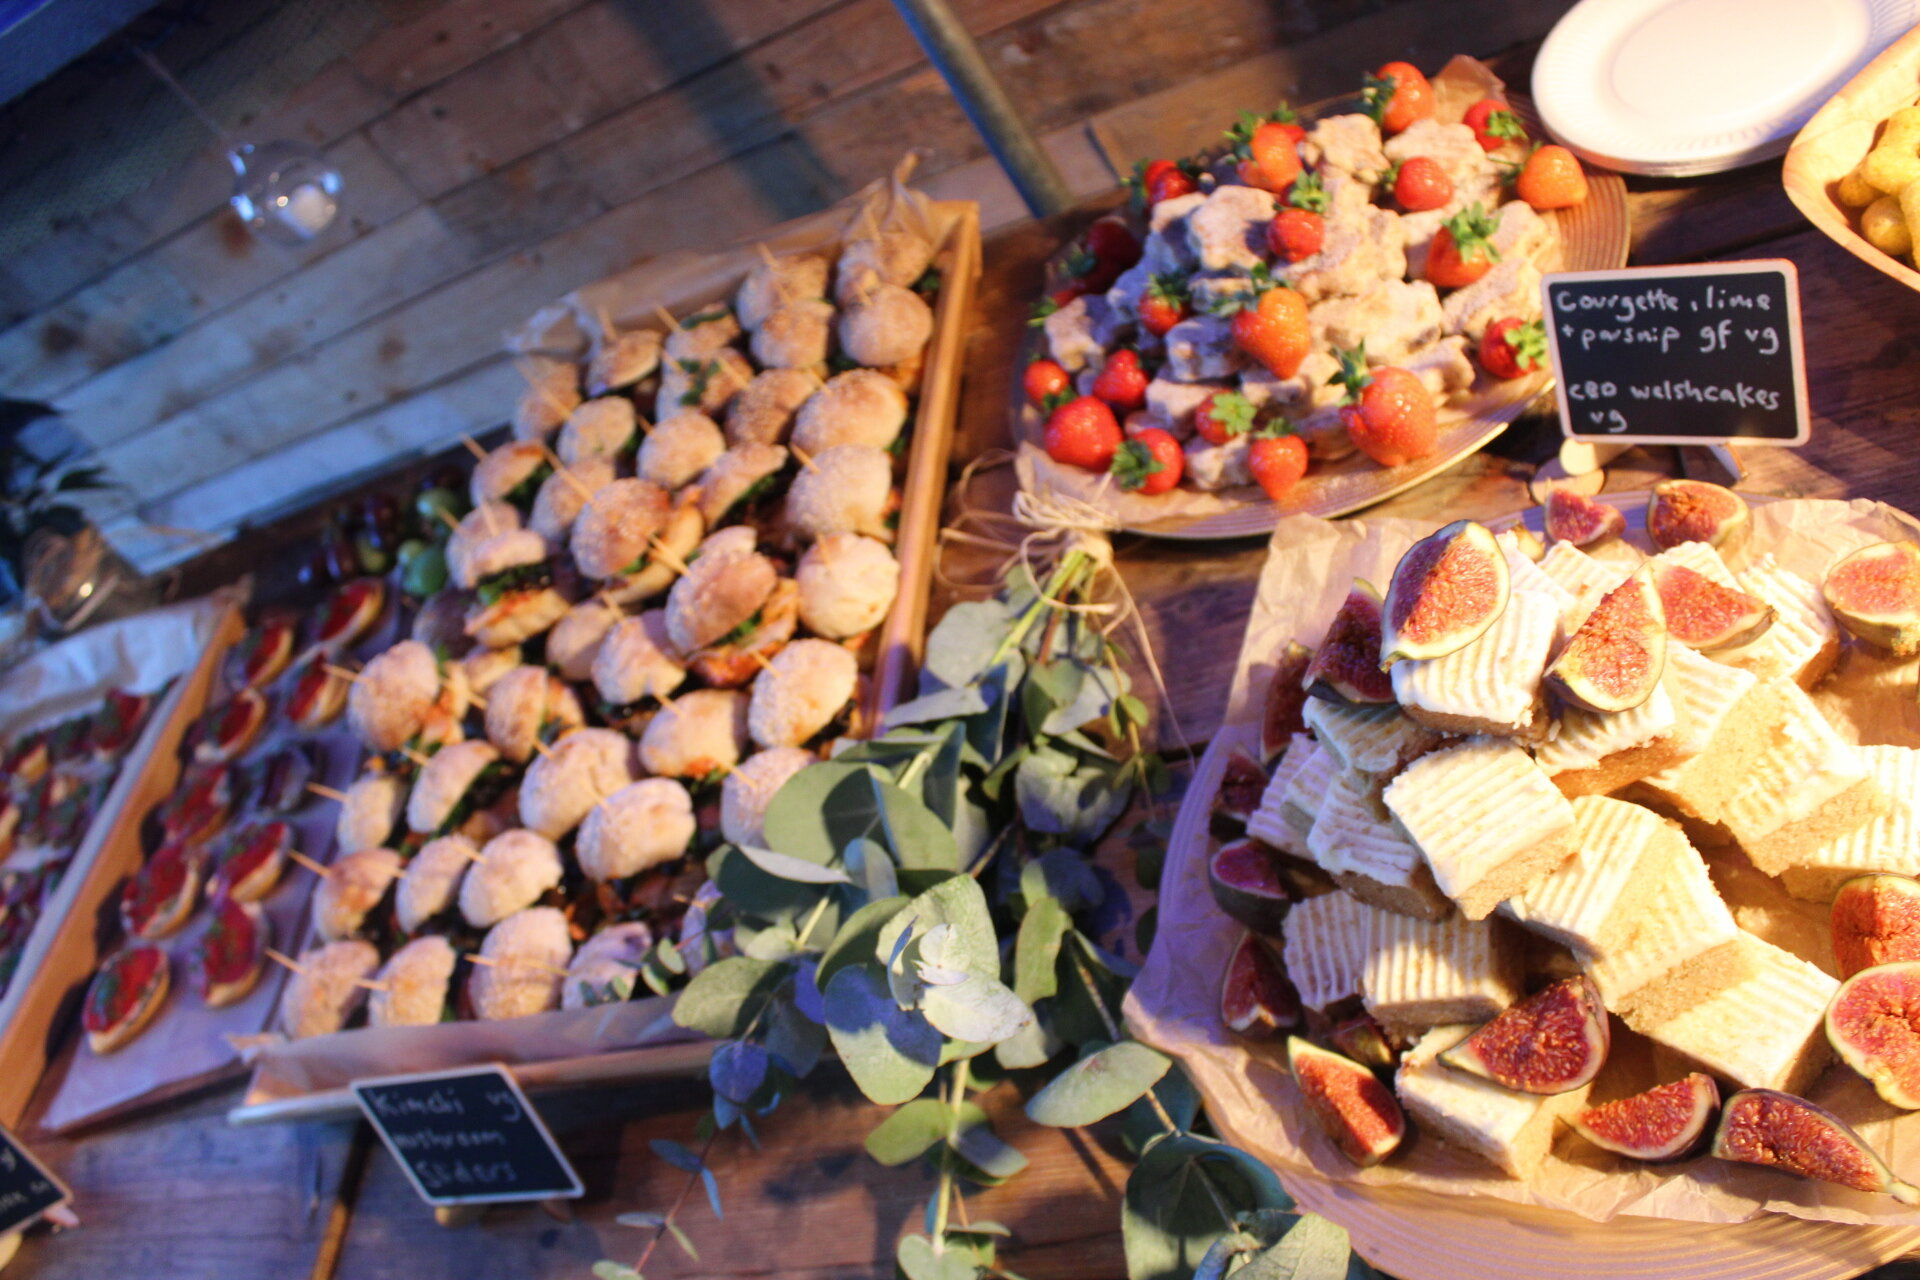 Vegan catering with the seasons and creativity in mind -